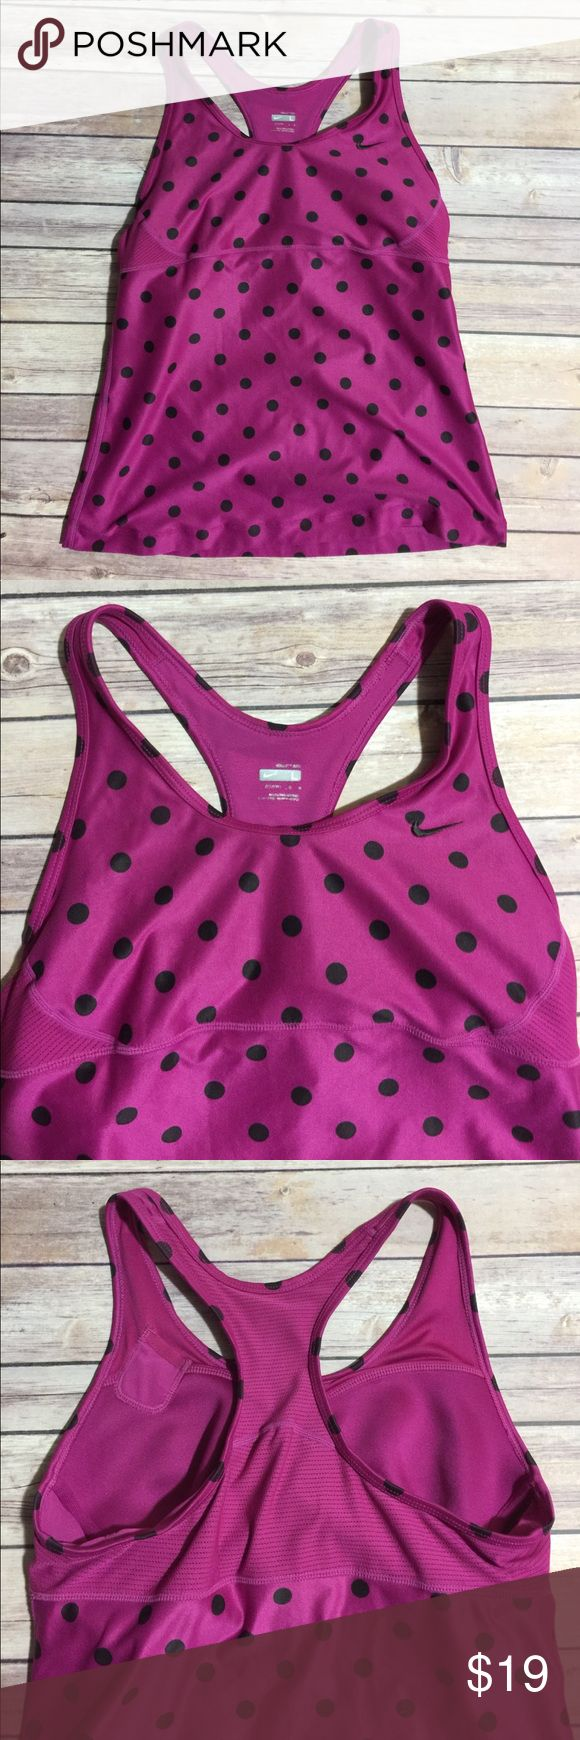 Nike Polka Dot Razor tank EUC with sports bra cup insides ... great for every workout Nike Tops Tank Tops